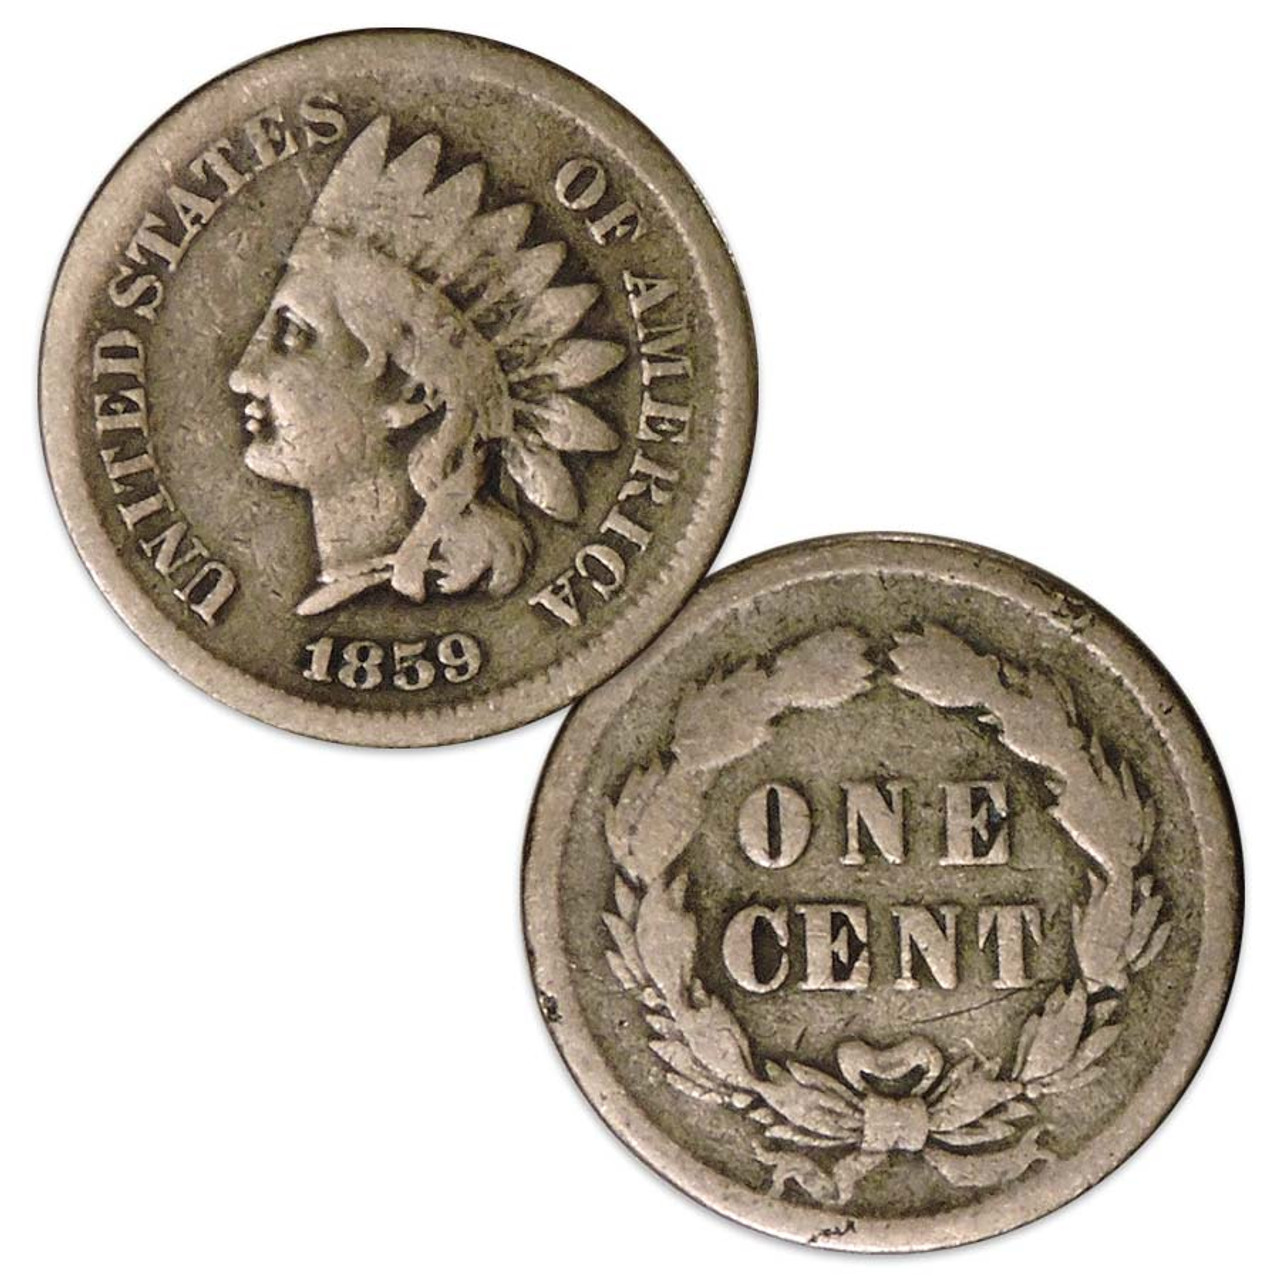 1859 Indian Head Cent Good Image 1